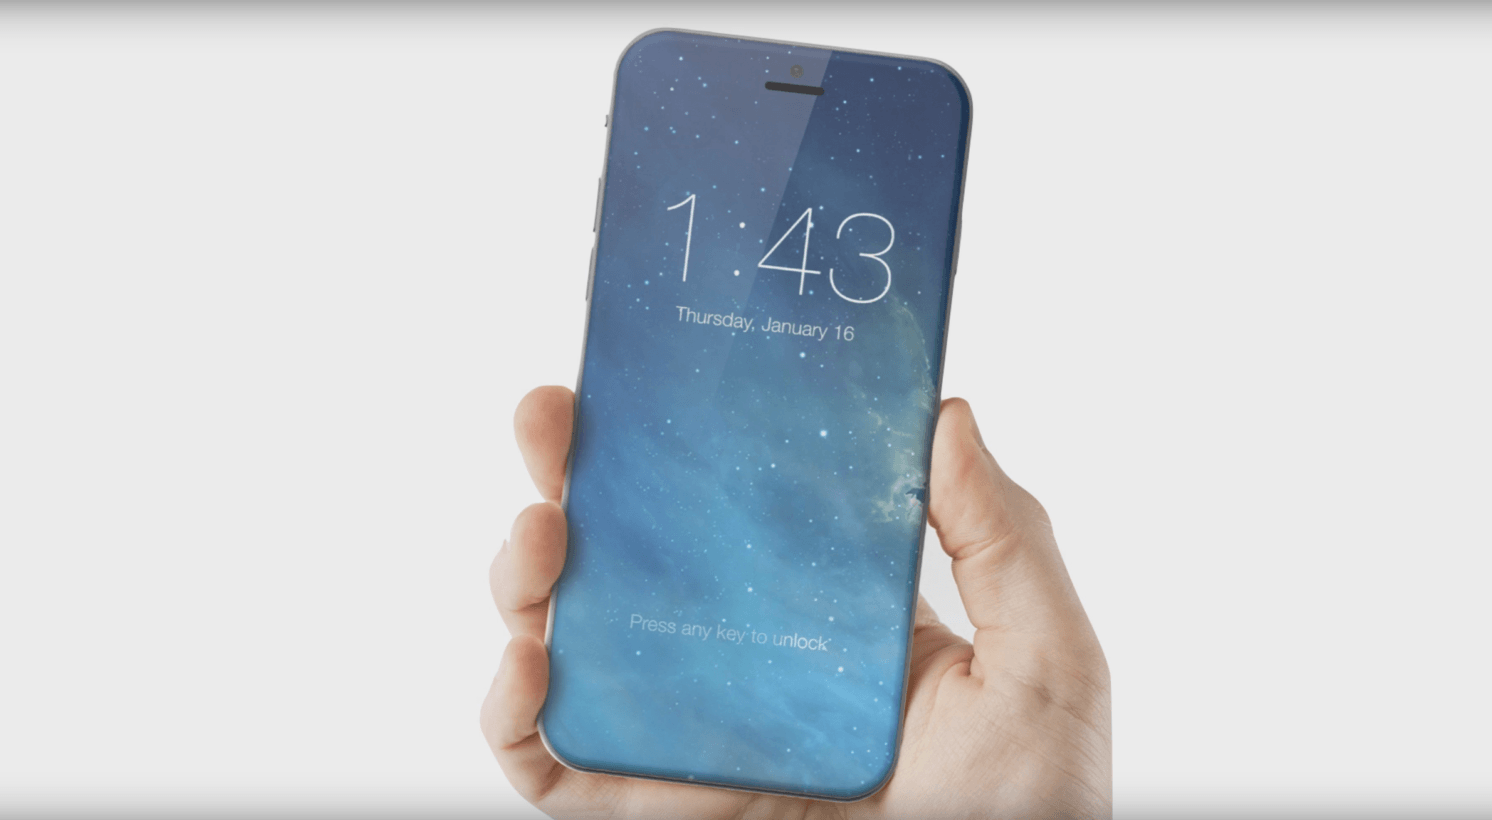 Edge-to-edge iPhone concept by ConceptsiPhone.